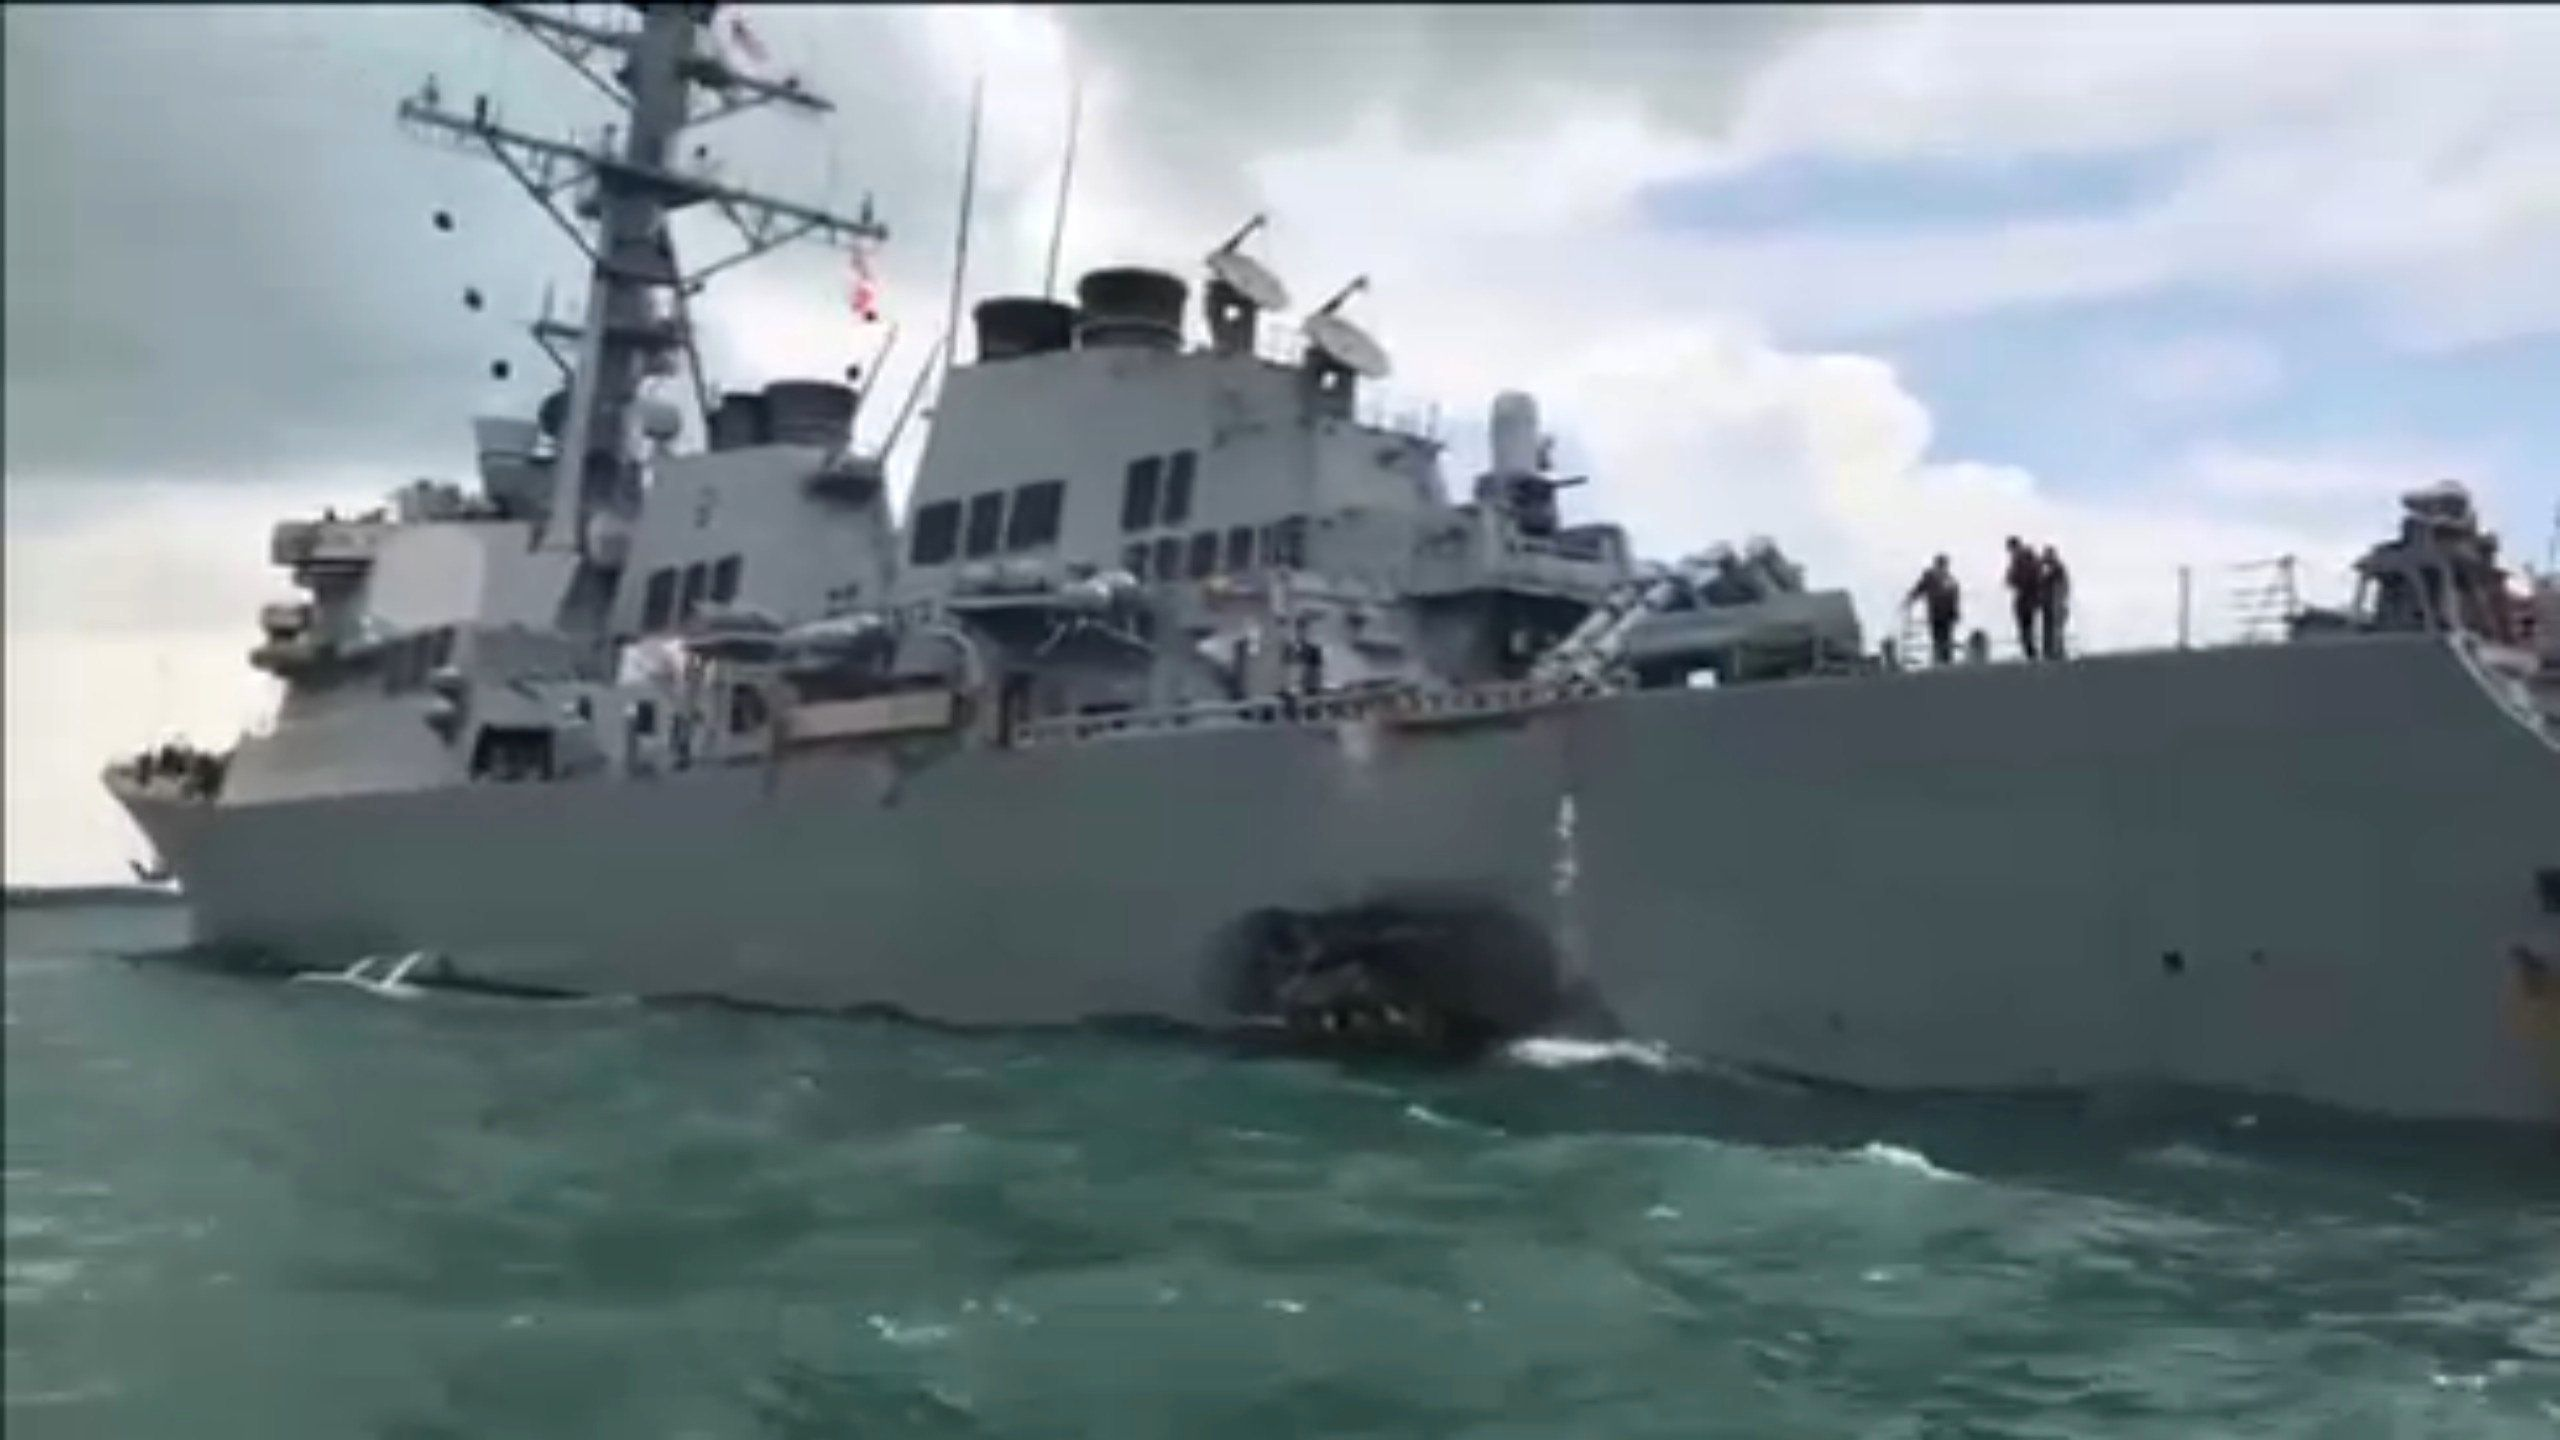 The USS John S. McCain, as seen after a collision in August in Singapore waters.